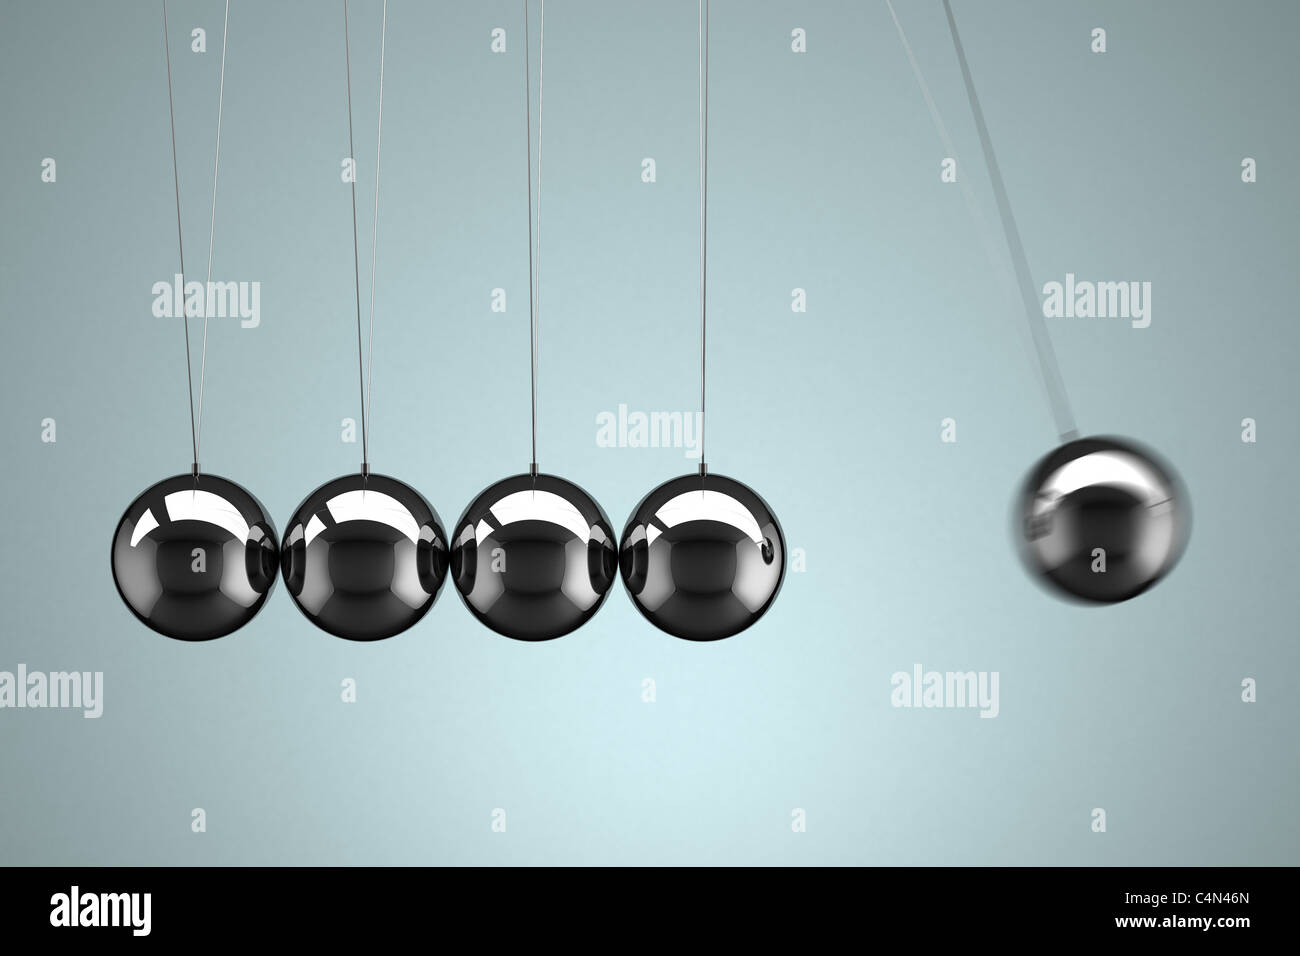 Newton's Cradle with motion blur - Stock Image